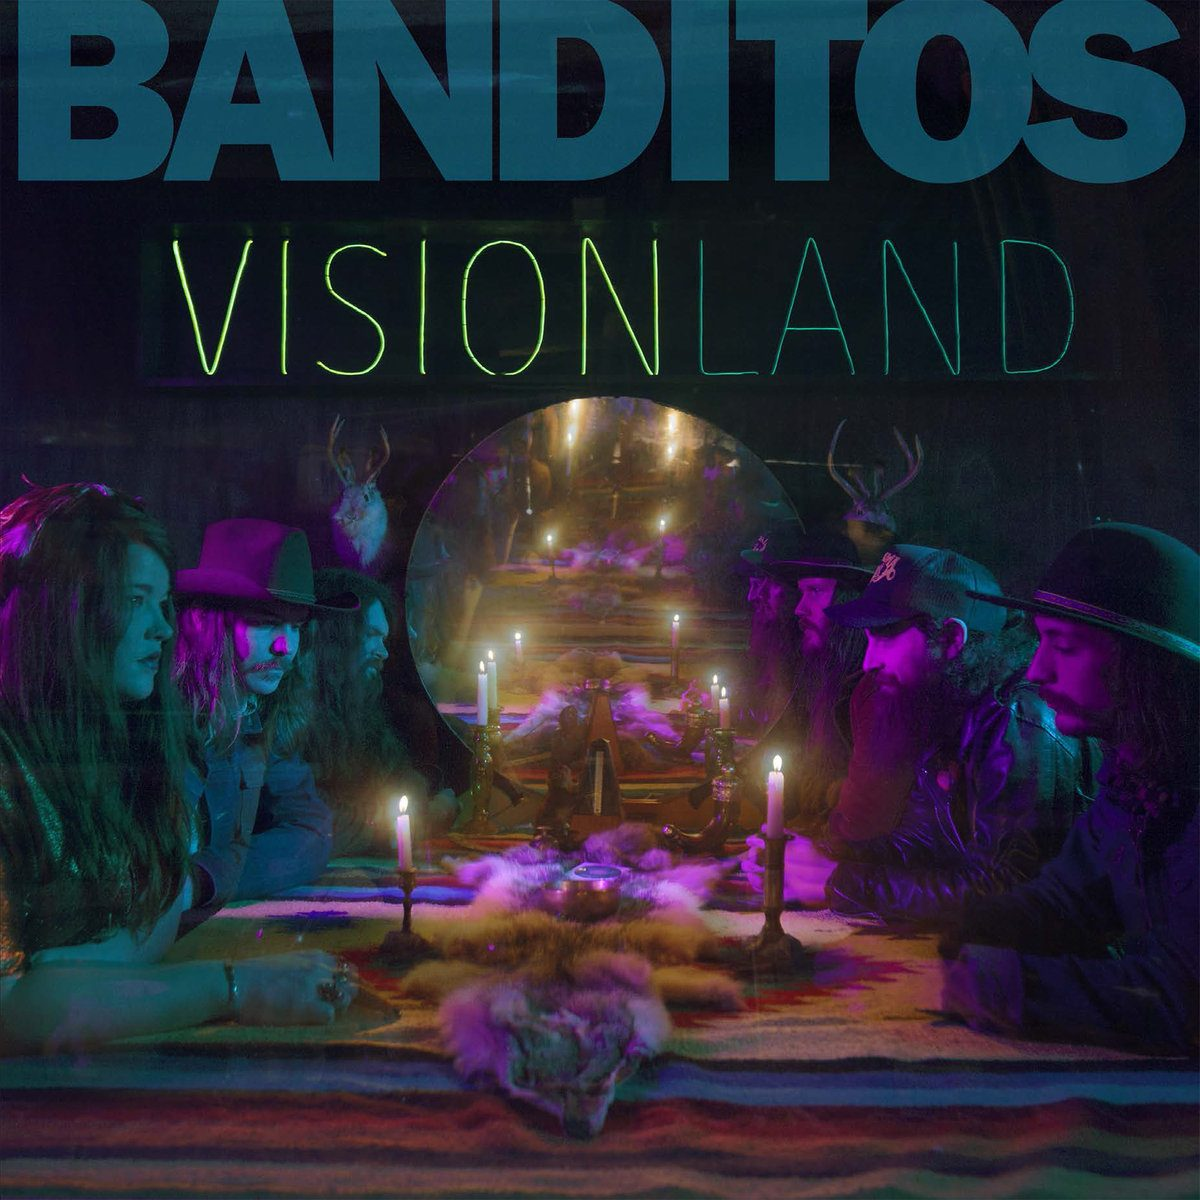 Banditos – Visonland (CD)